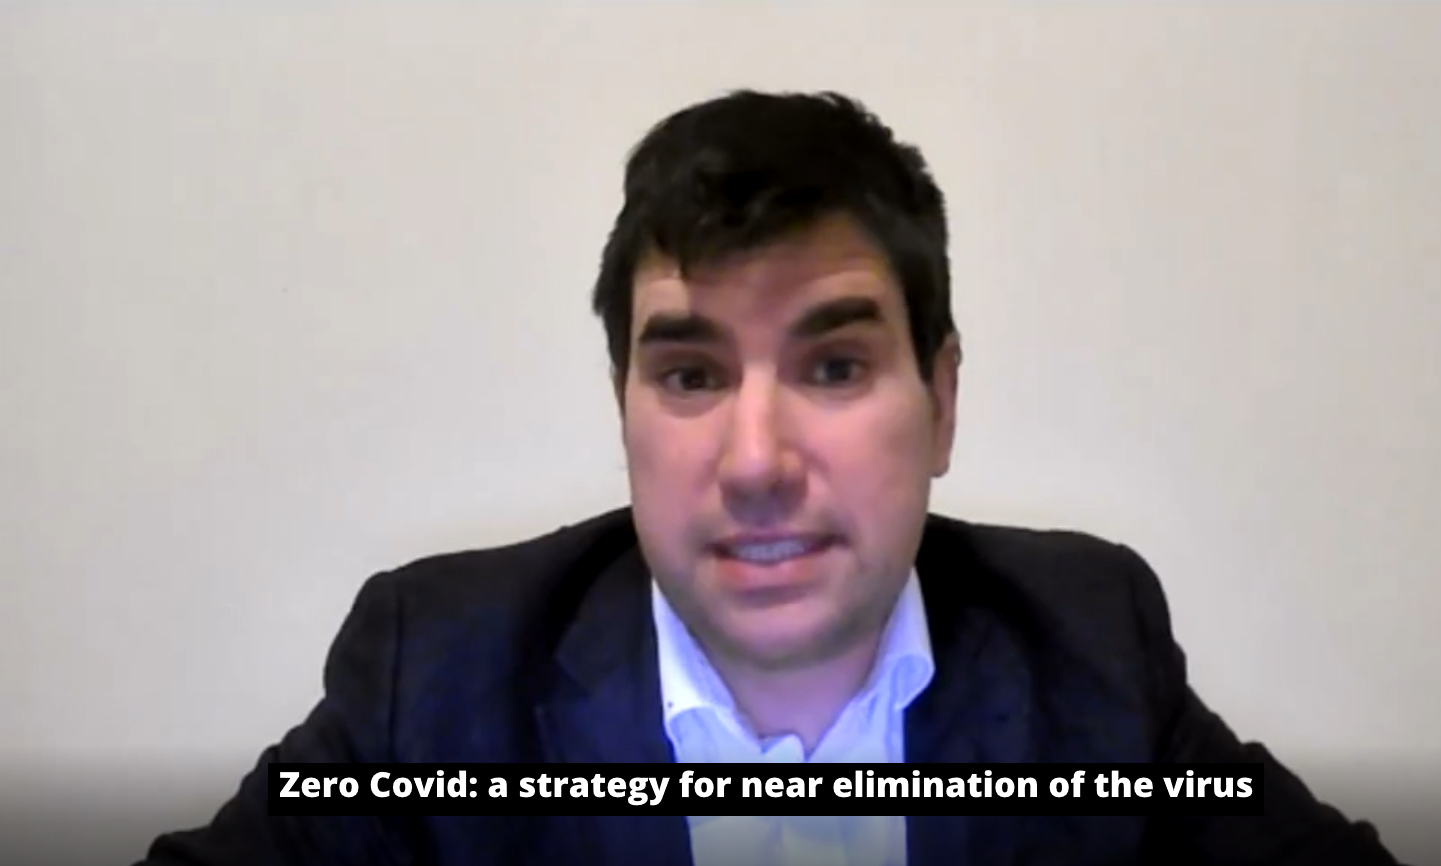 Richard Burgon MP with the caption Zero Covid: a strategy for near-elimination of the virus